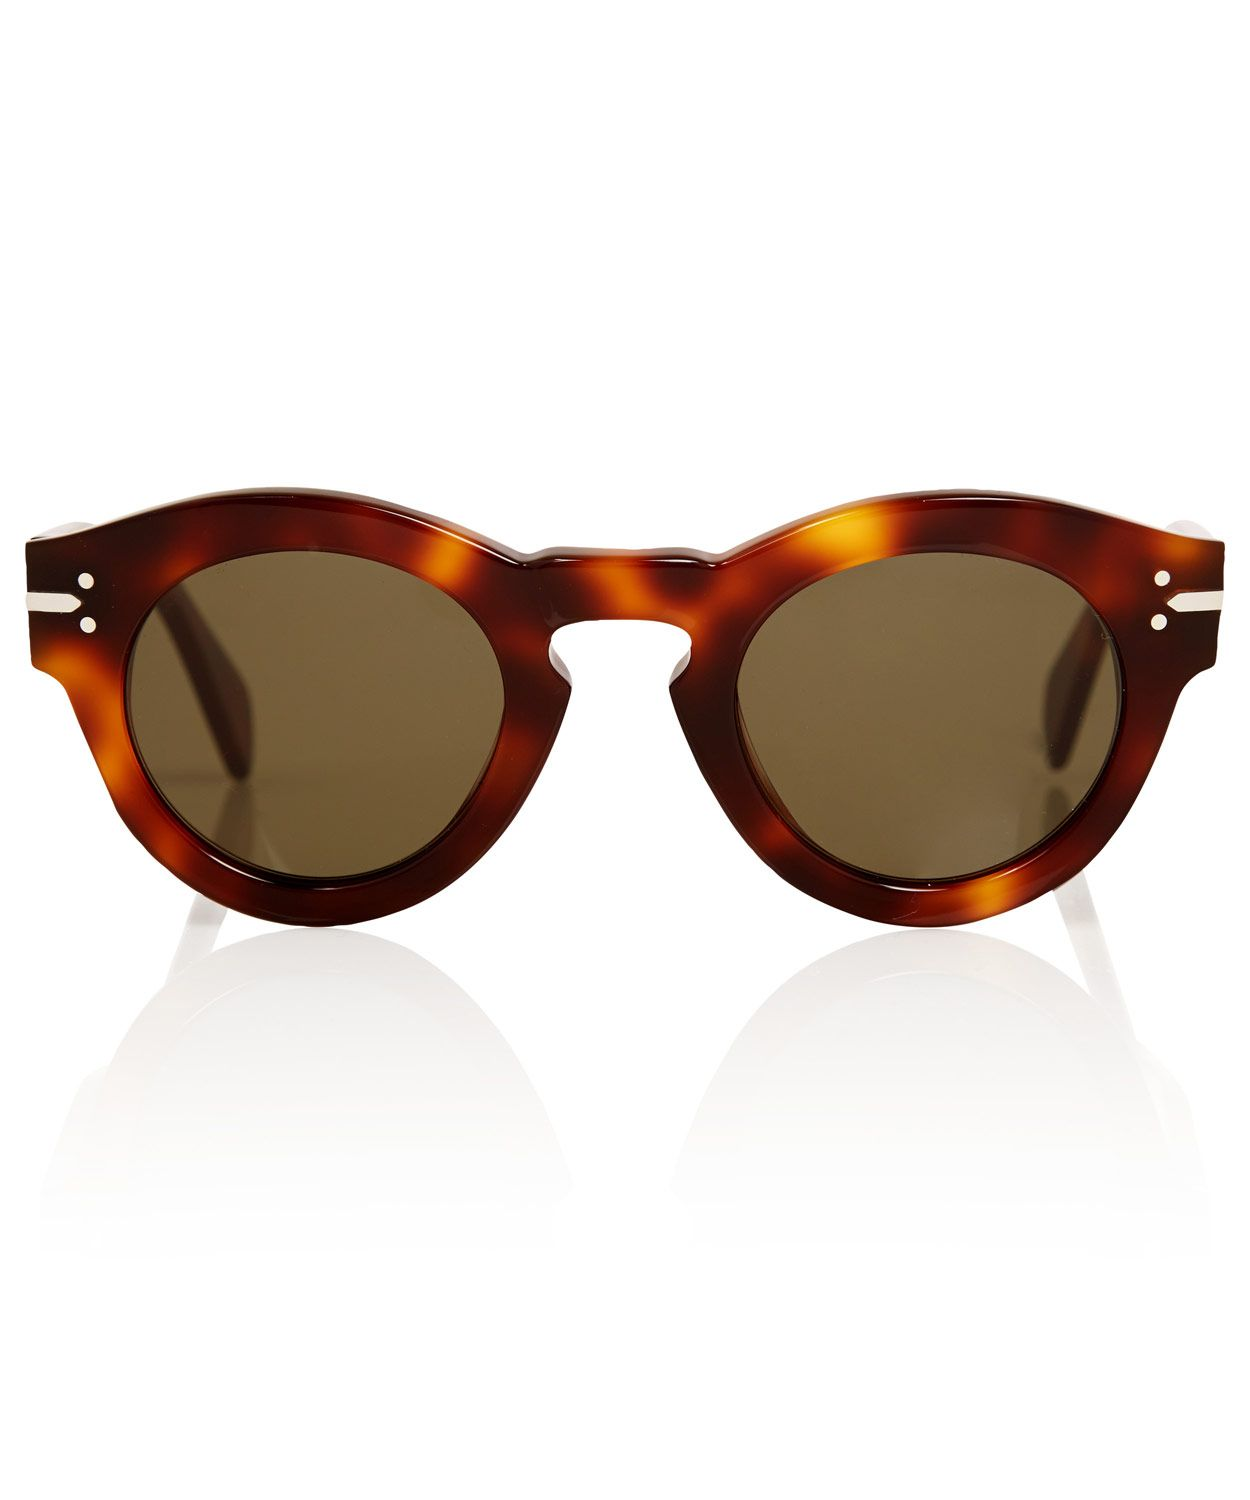 bec48428ad926 Céline Brown New Butterfly Sunglasses